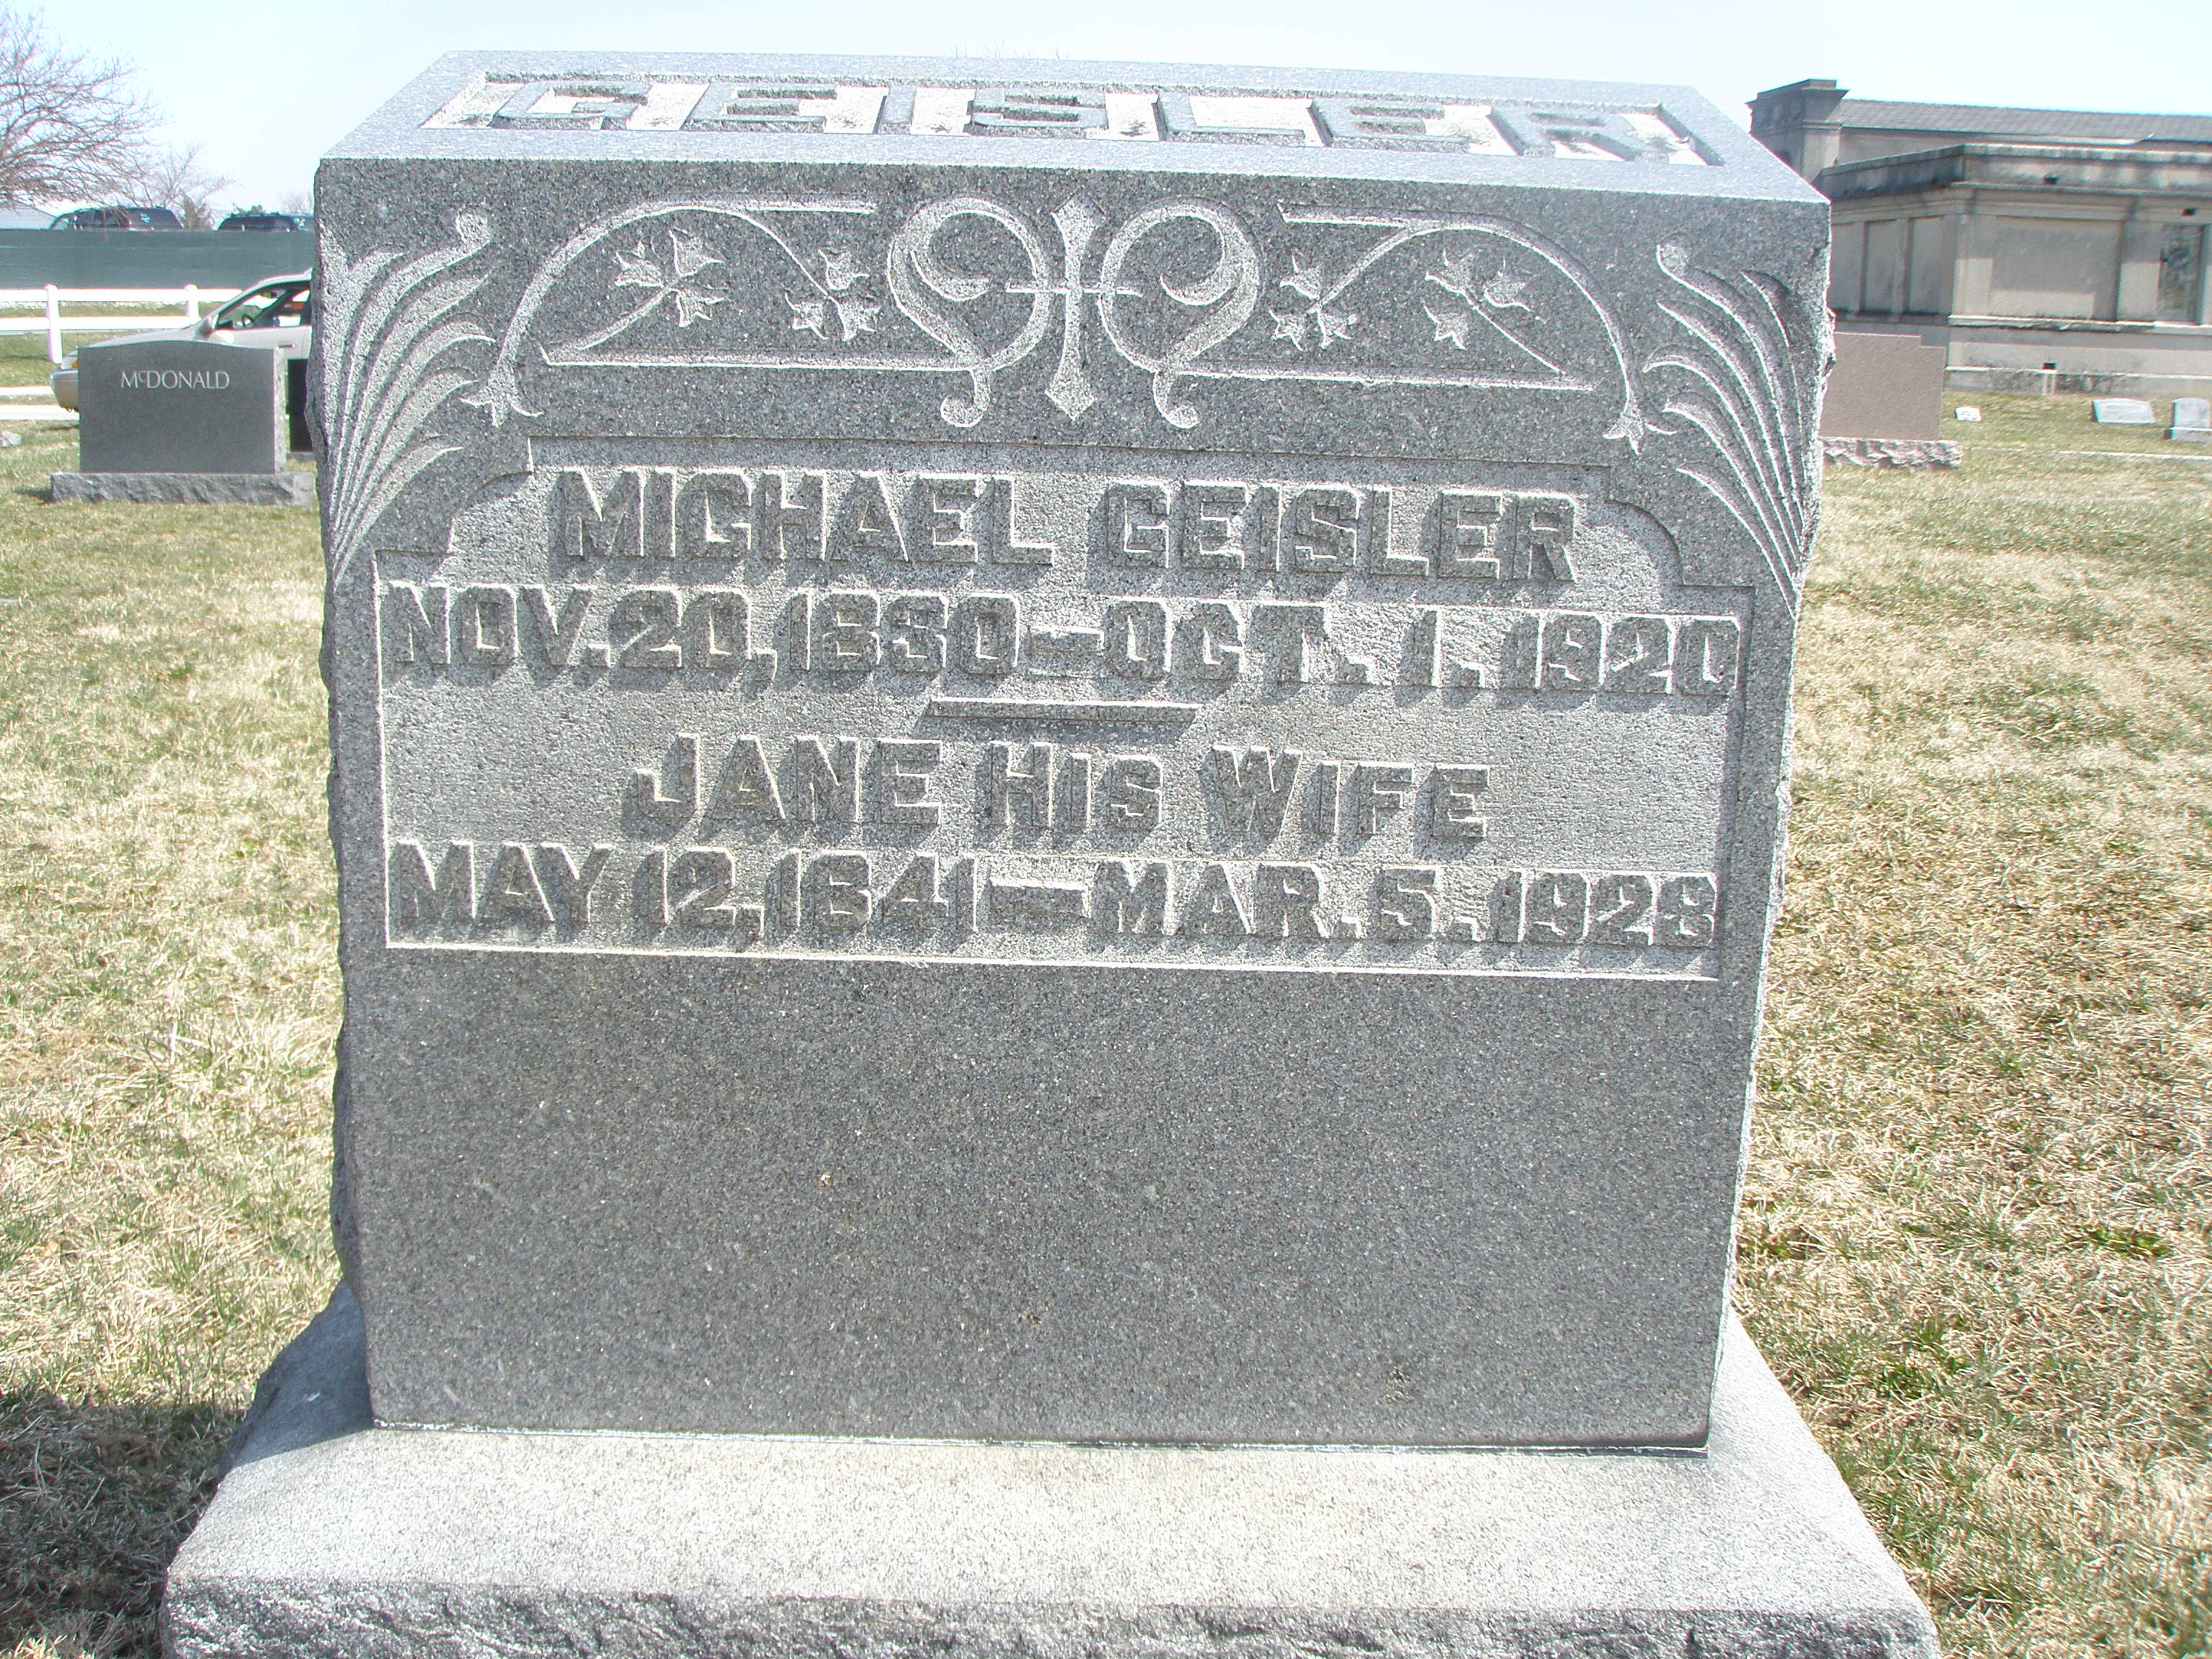 Michael and Jane Geisler of Franklin County Ohio